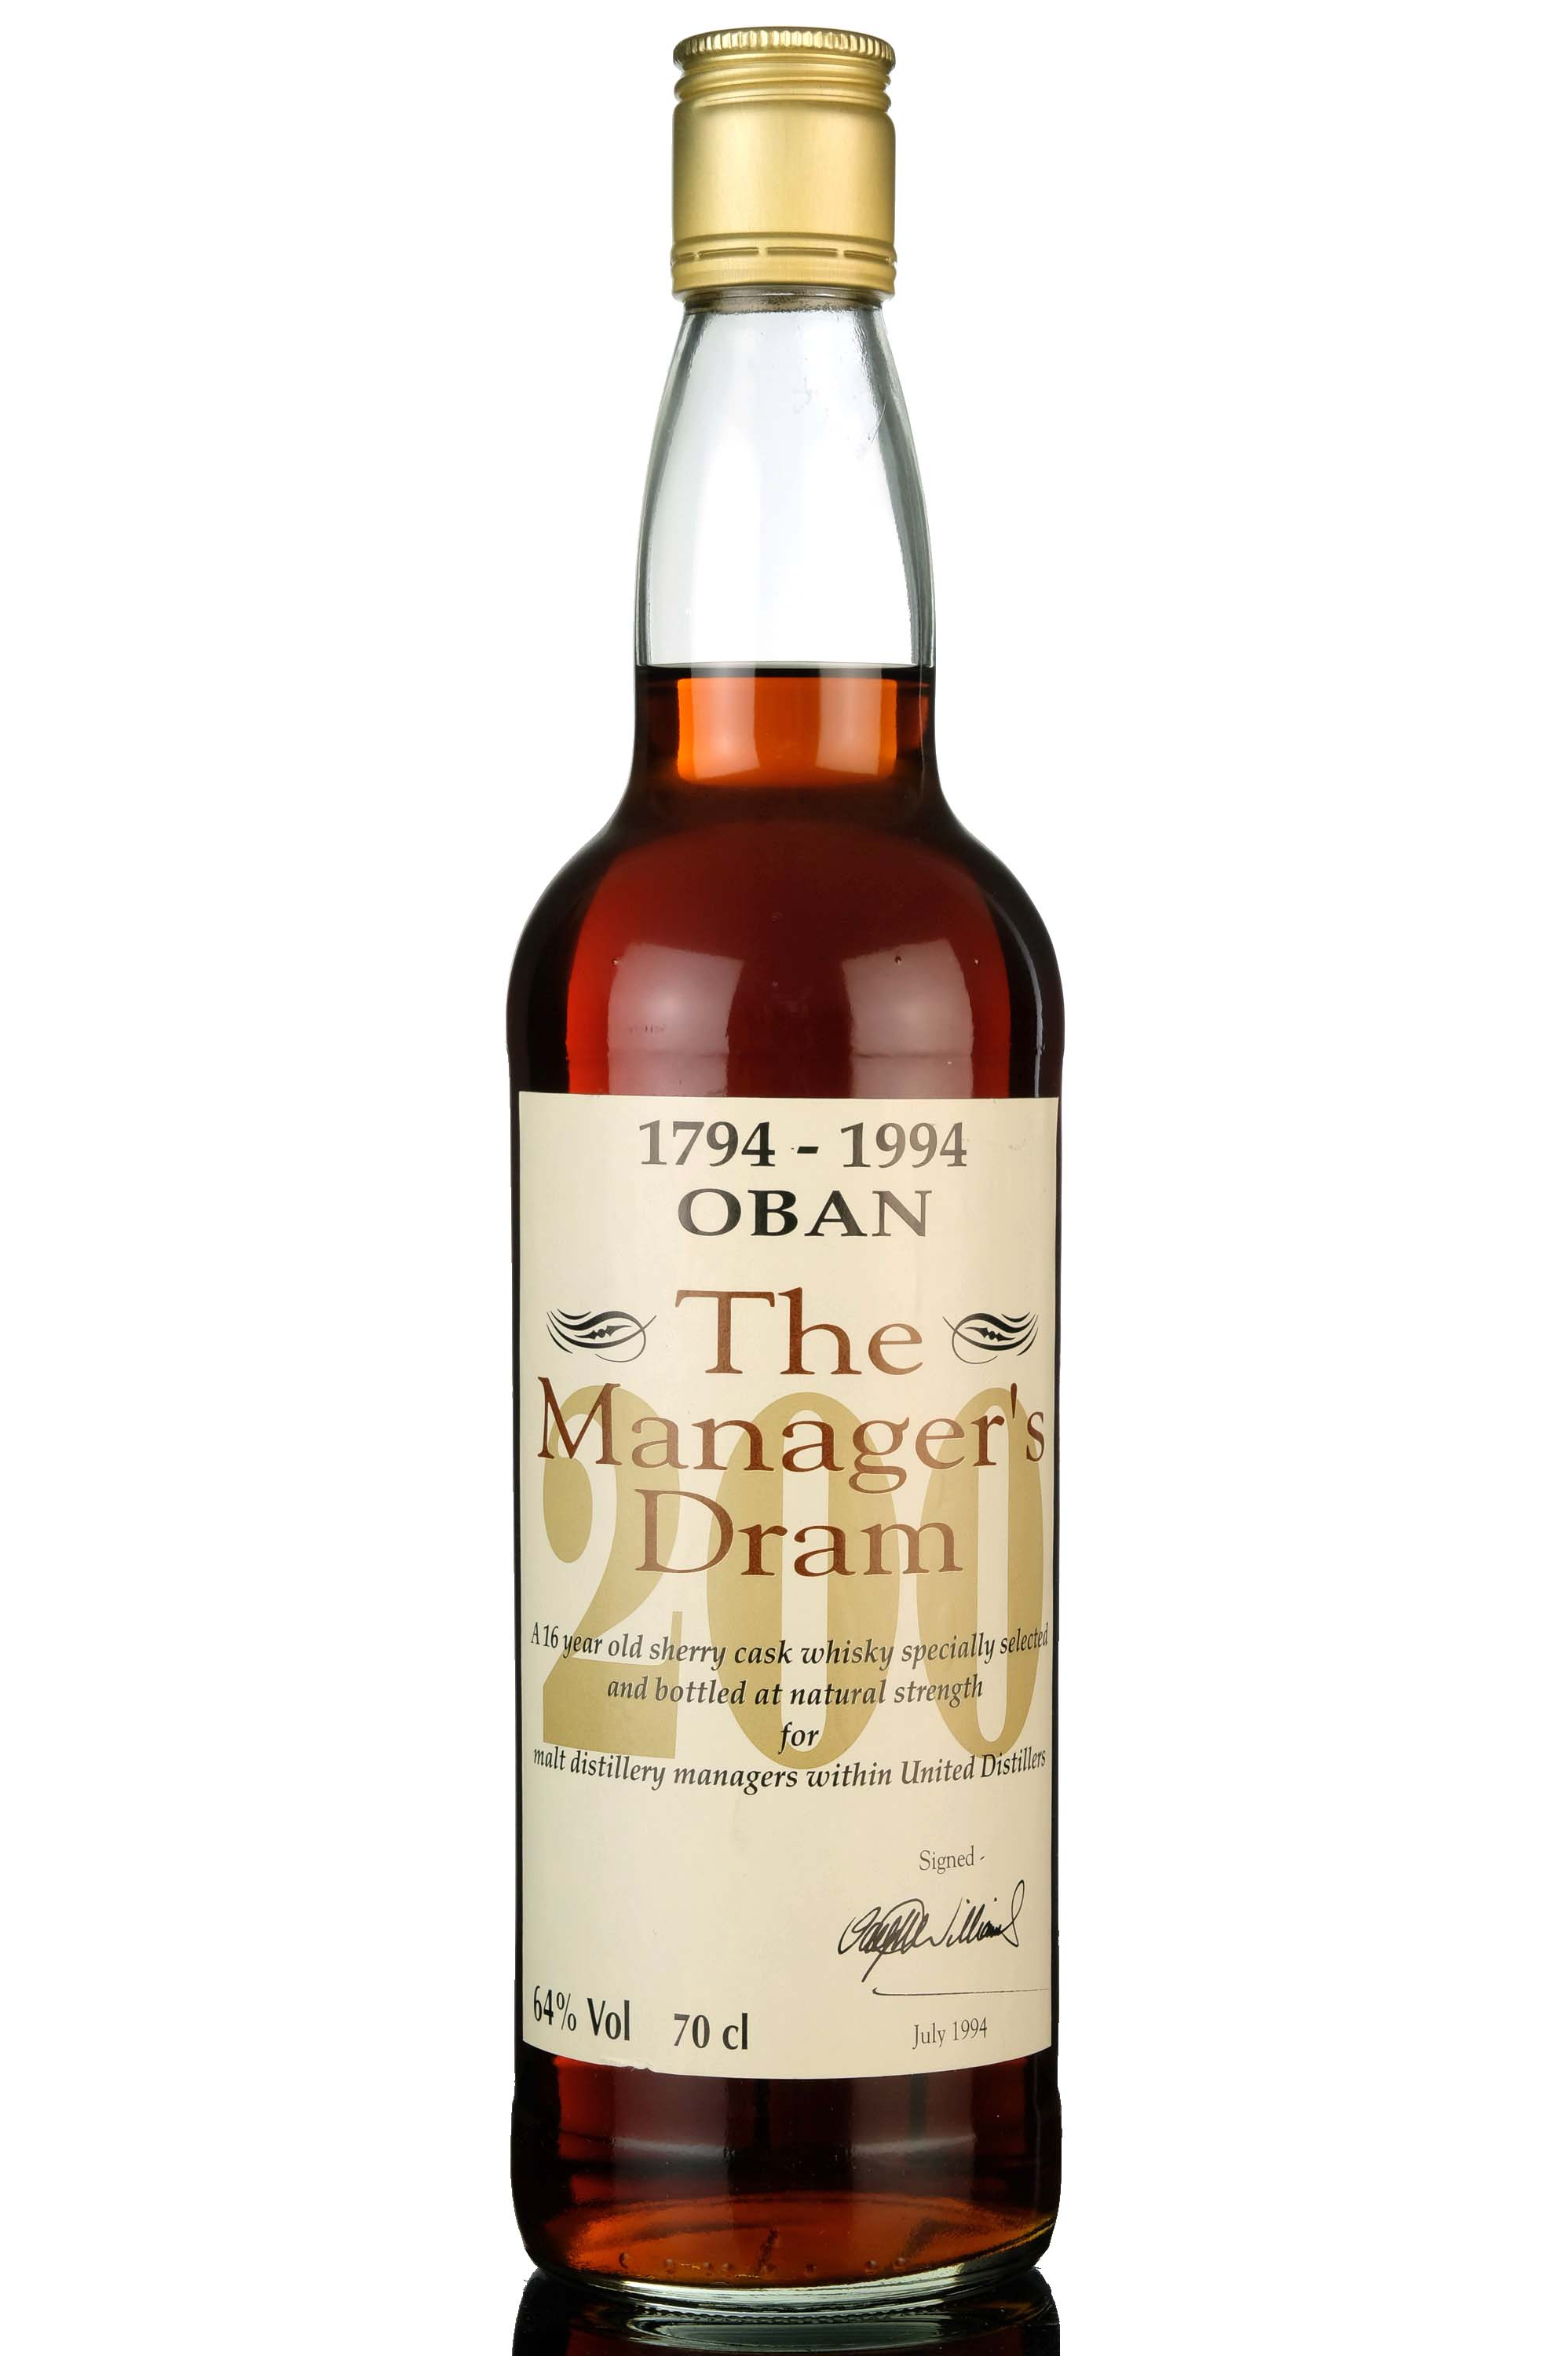 oban 16 year old - managers dram - bicentenary 1994